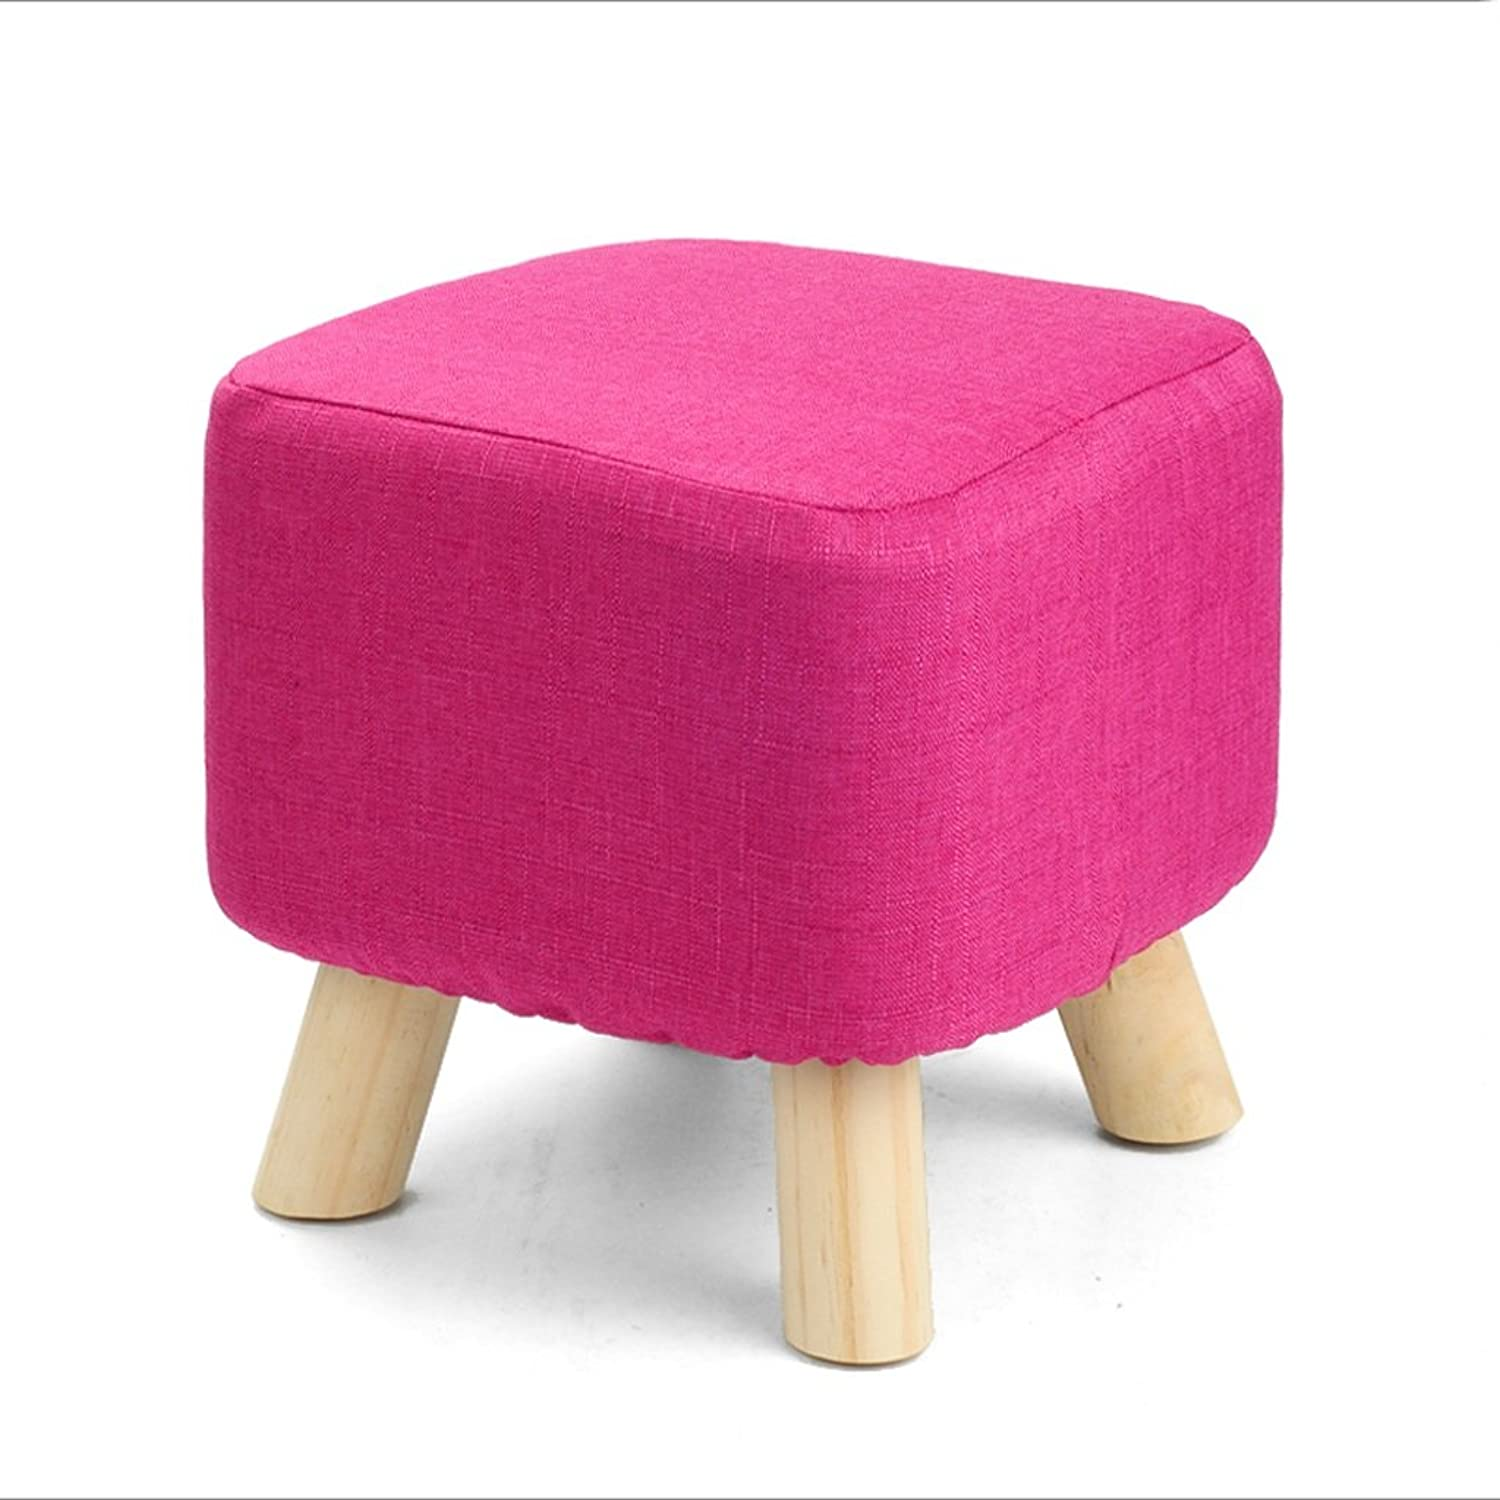 Solid Wood shoes Bench Creative Stool Fabric Sofa Stool Sofa Bench Simple Bench(L28cmW28cmH28cm) (color   Pink)